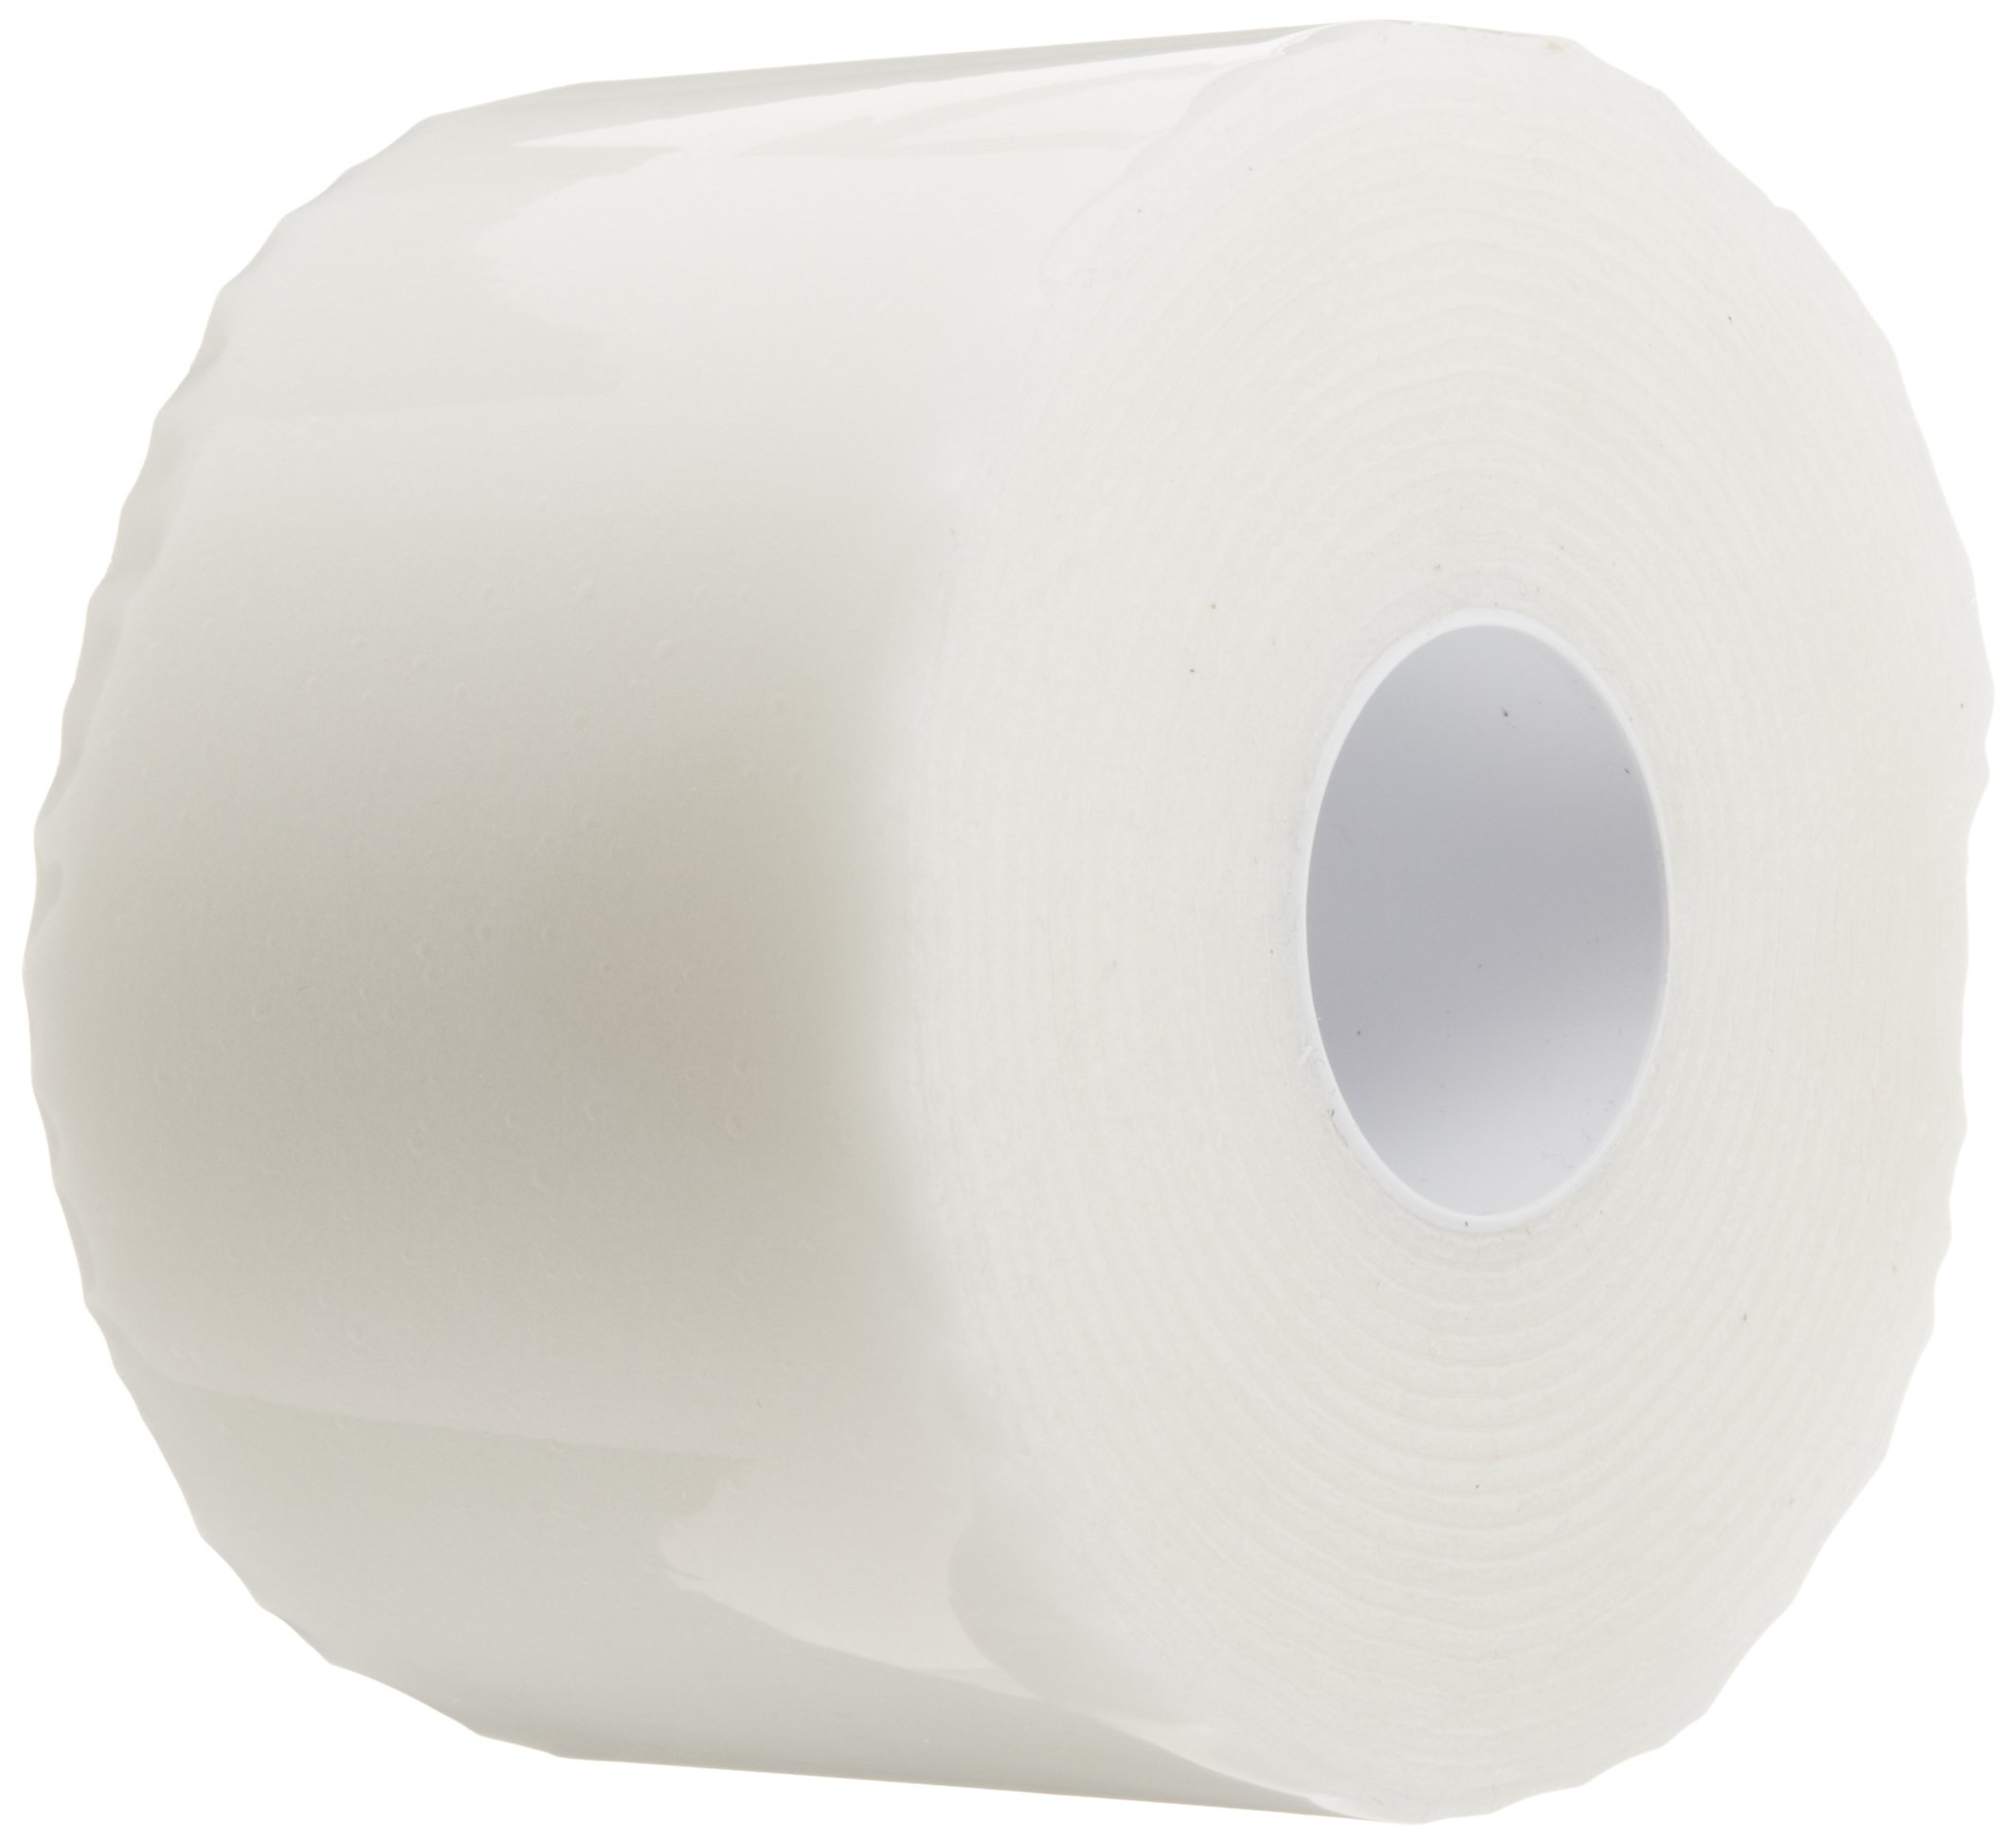 3M 4412N 2.95275590551181in X 5yd Sealant Tape (1 Roll) by 3M